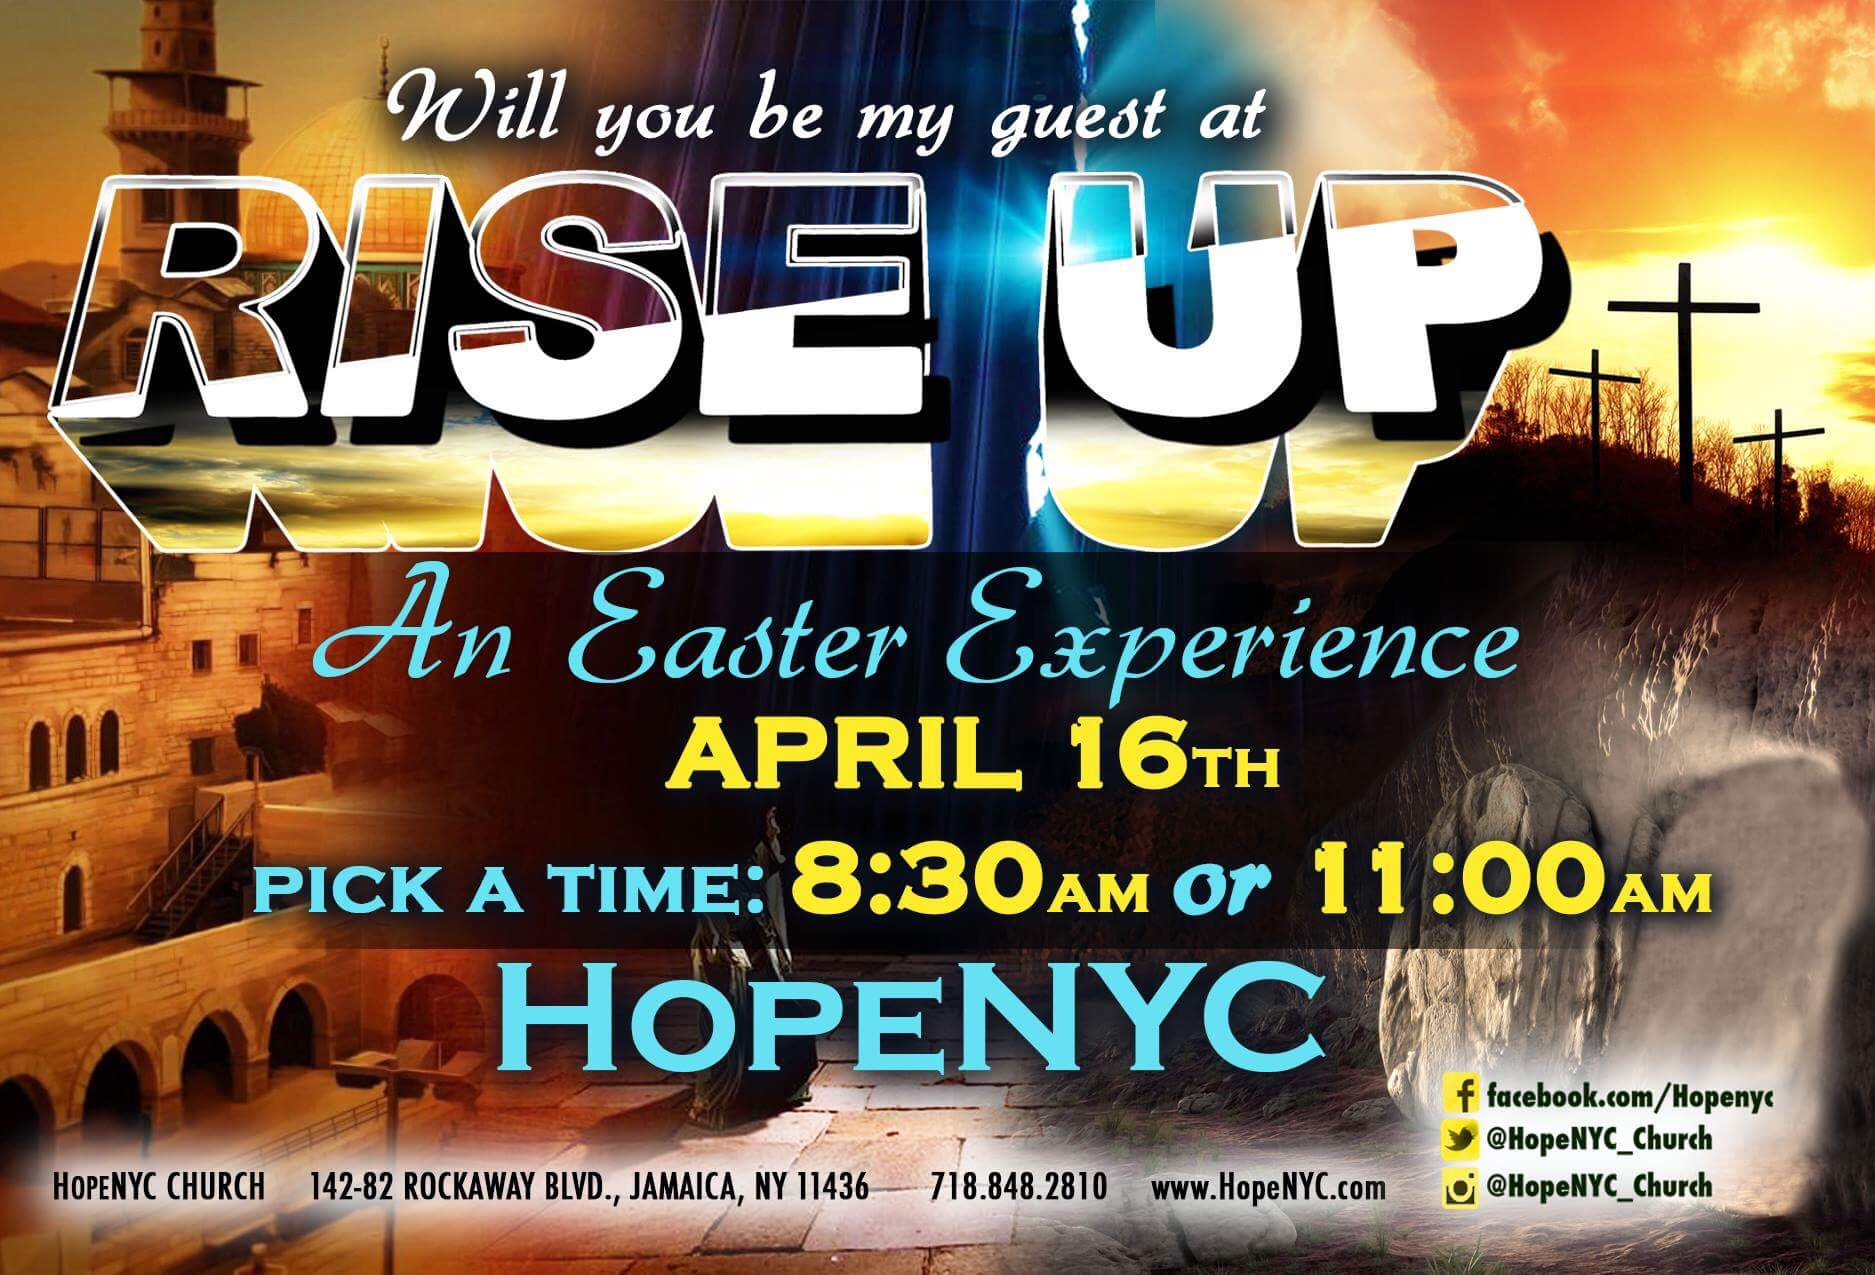 Nyc sips of hope rise up easter service exciting live broadway like production with sermons singing and dancingfree free gifts for first time guest its hopenyc negle Image collections